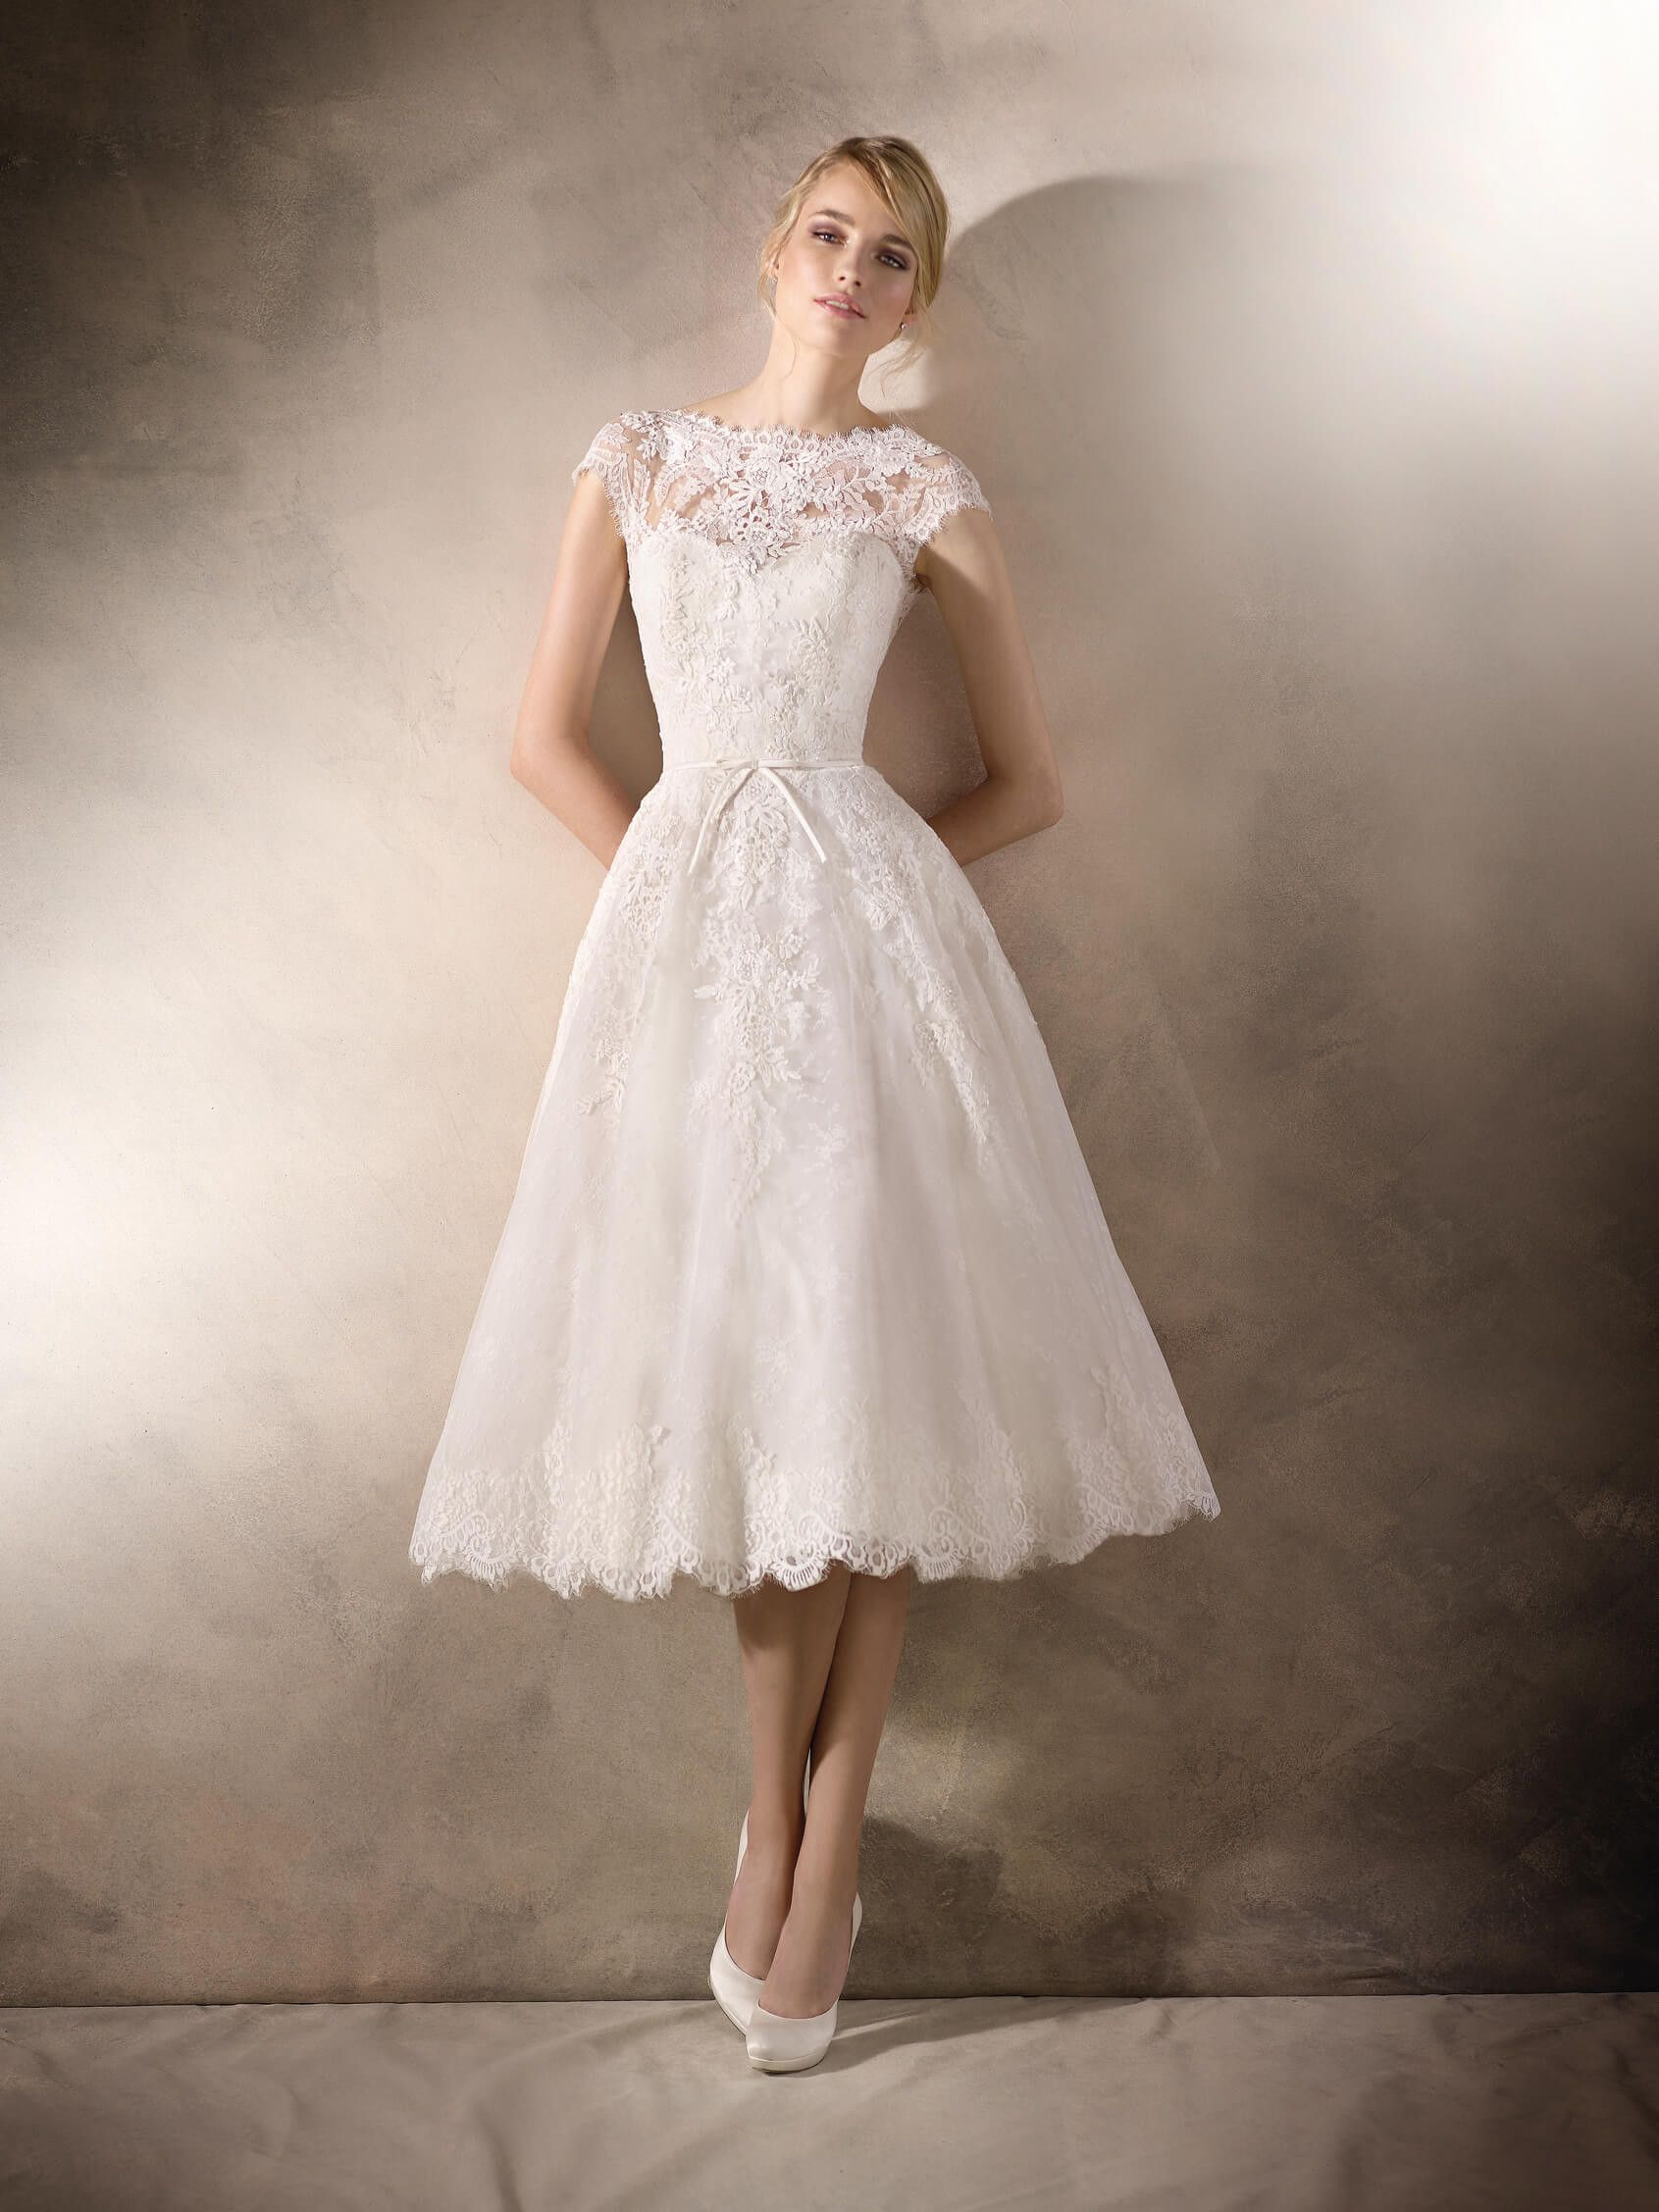 Hila is a romantic short wedding dress in lace tulle guipure and